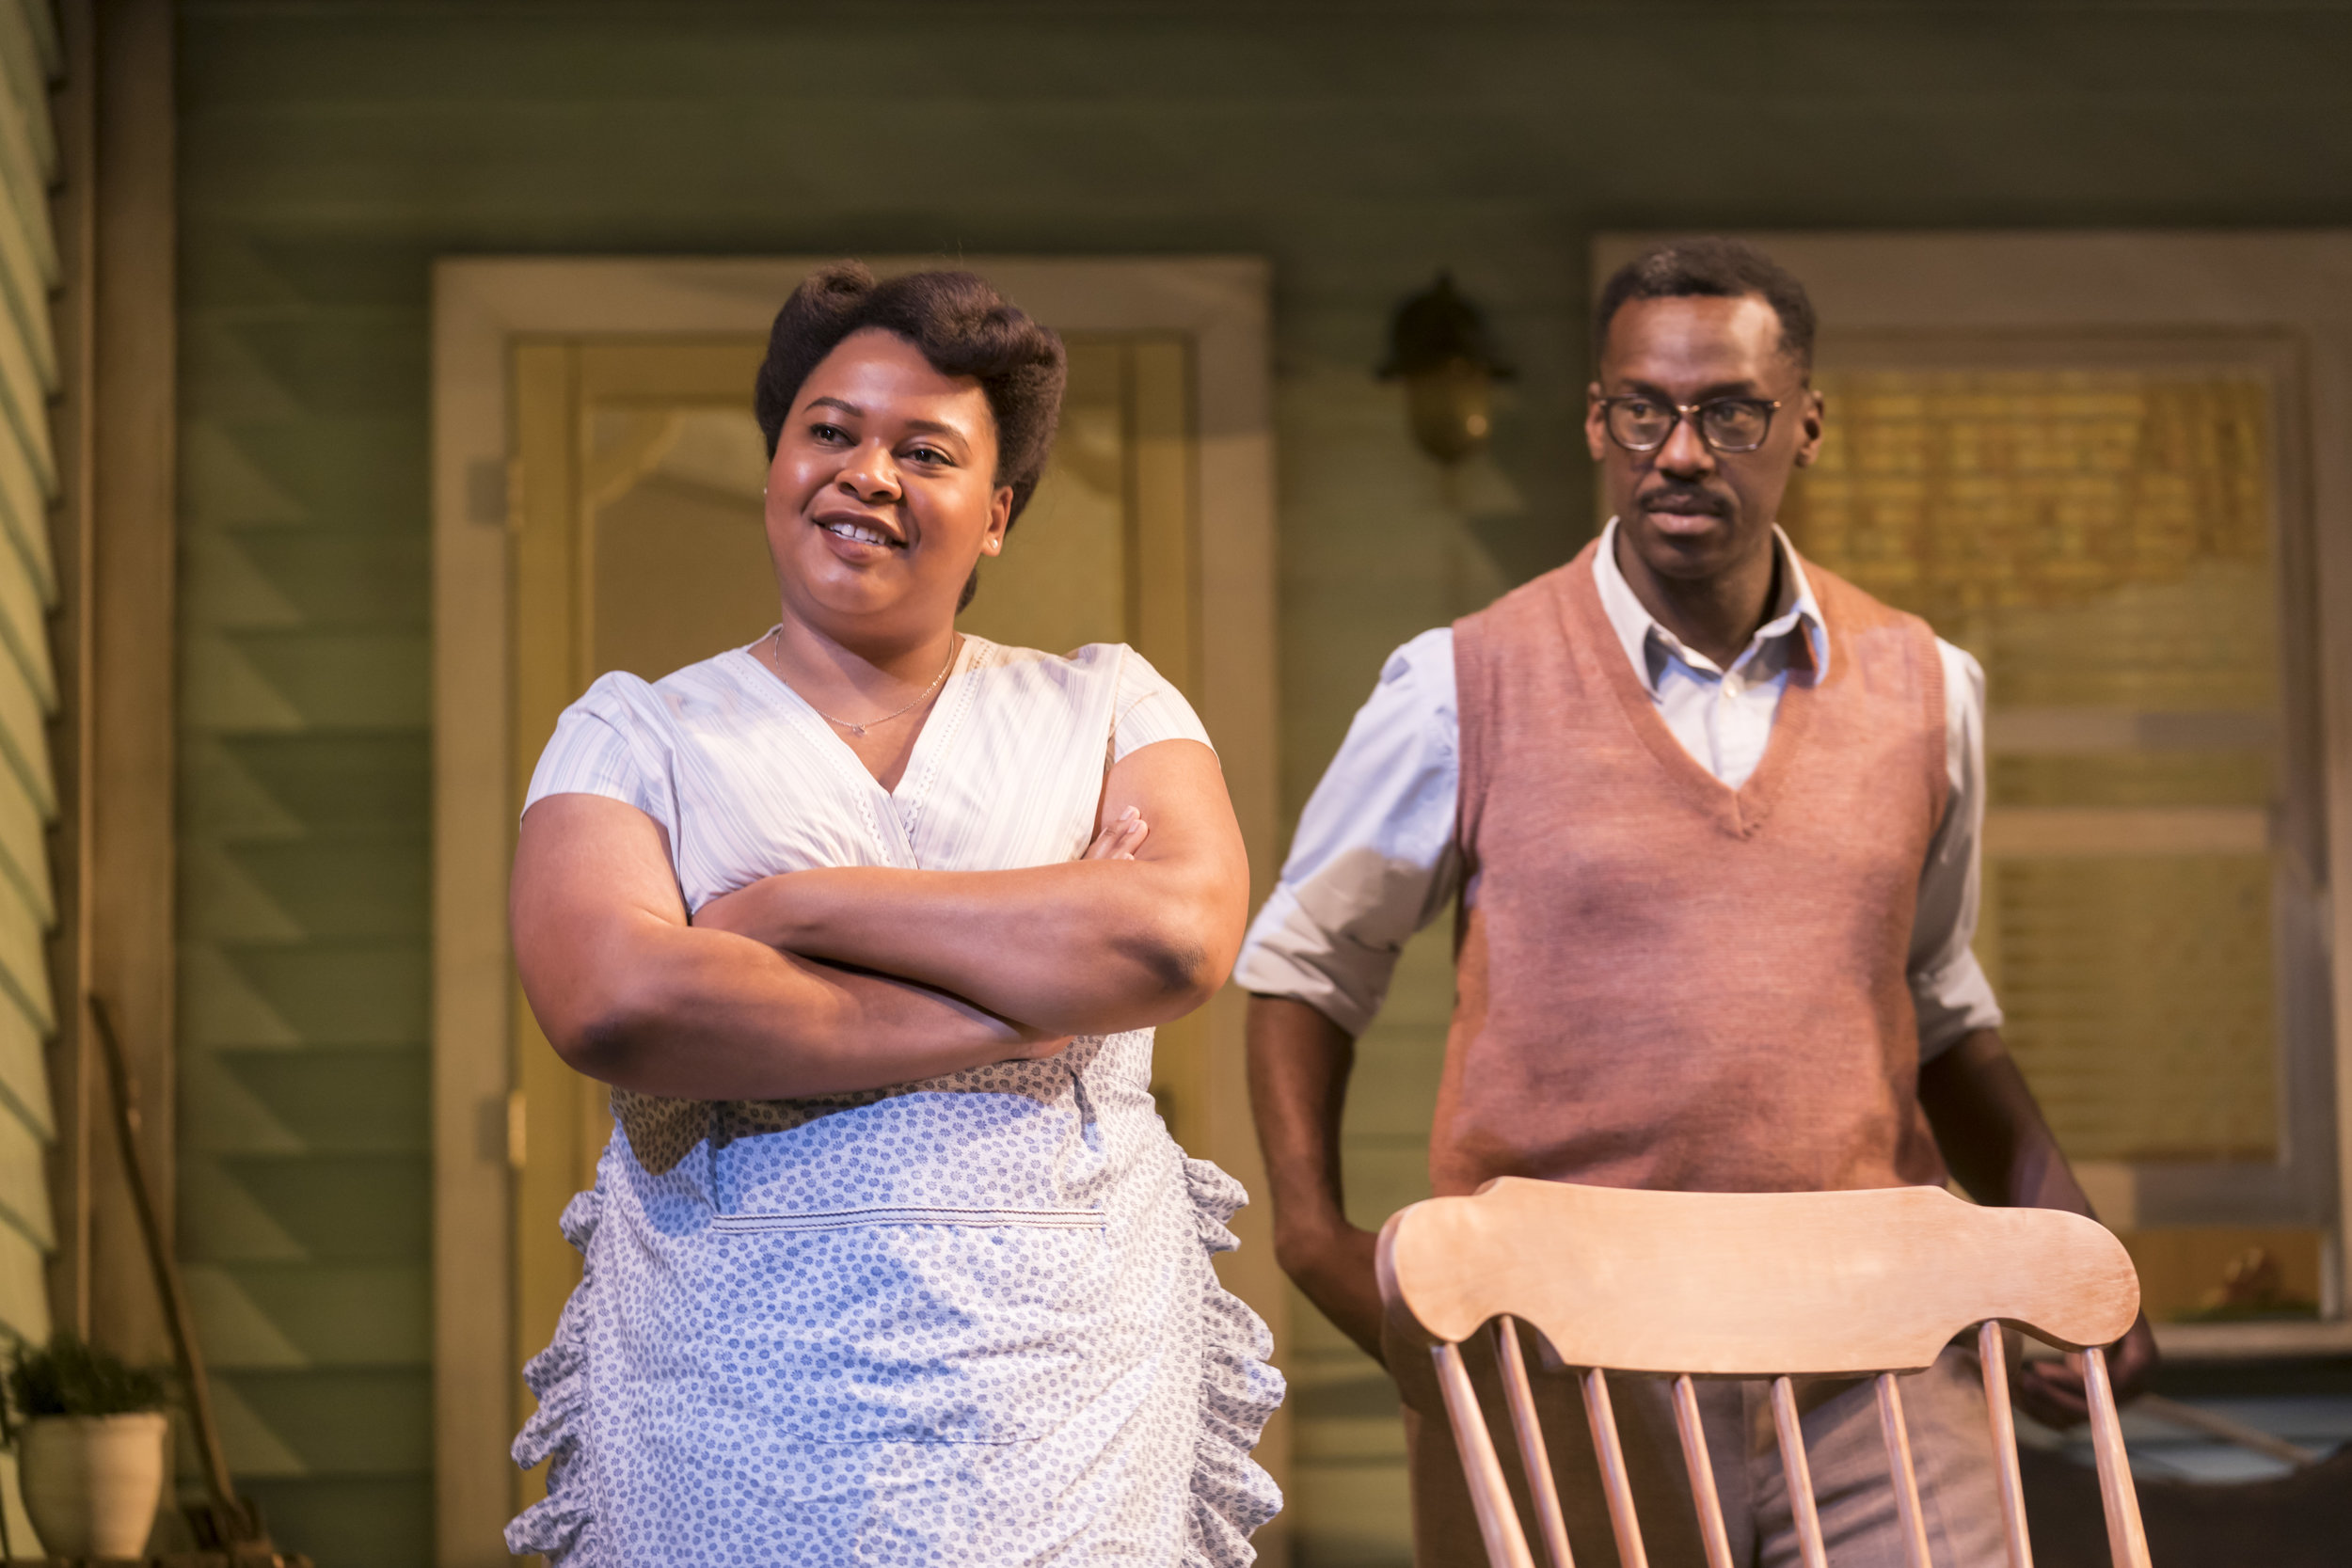 NTL 2019 All My Sons Photography by Johan Persson_04766.jpg